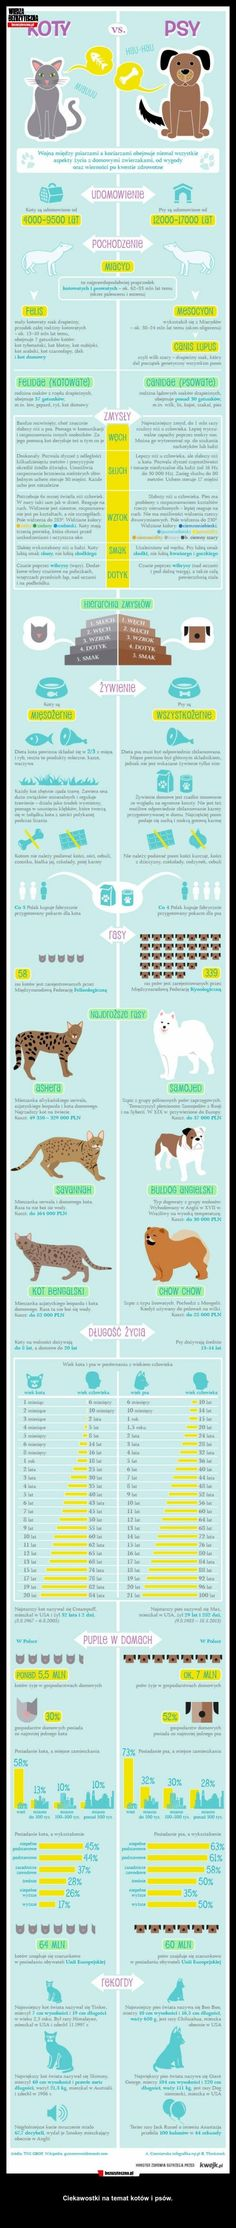 The eternal dispute about dogs and cats .. and you for who you are? ; D #cats